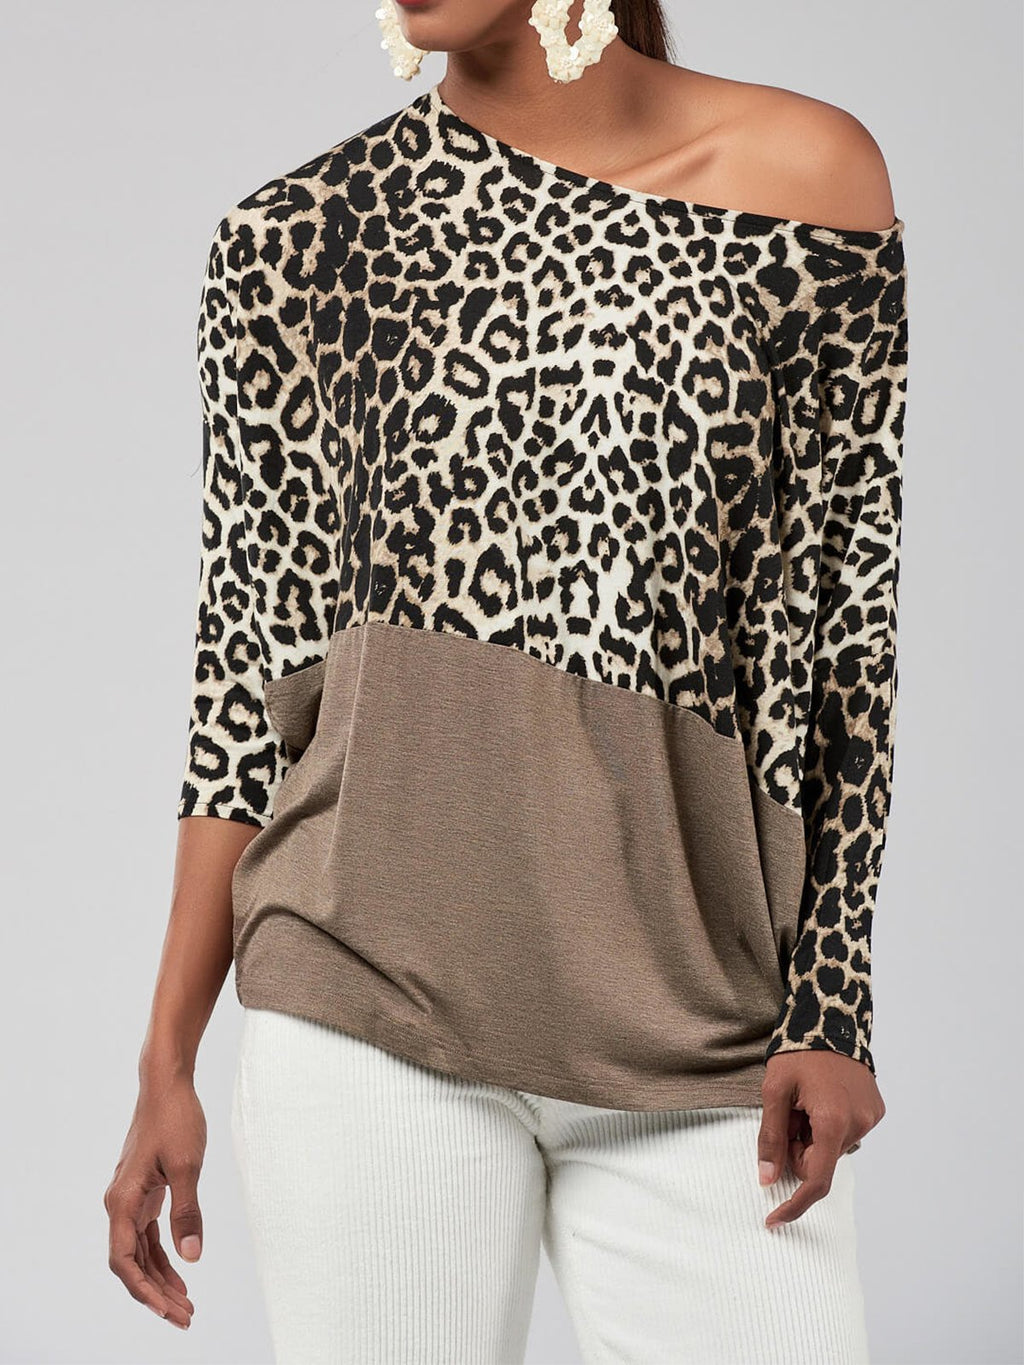 Camel Leopard Brown Color Block Hem One Shoulder Batwing Sleeve Blouse